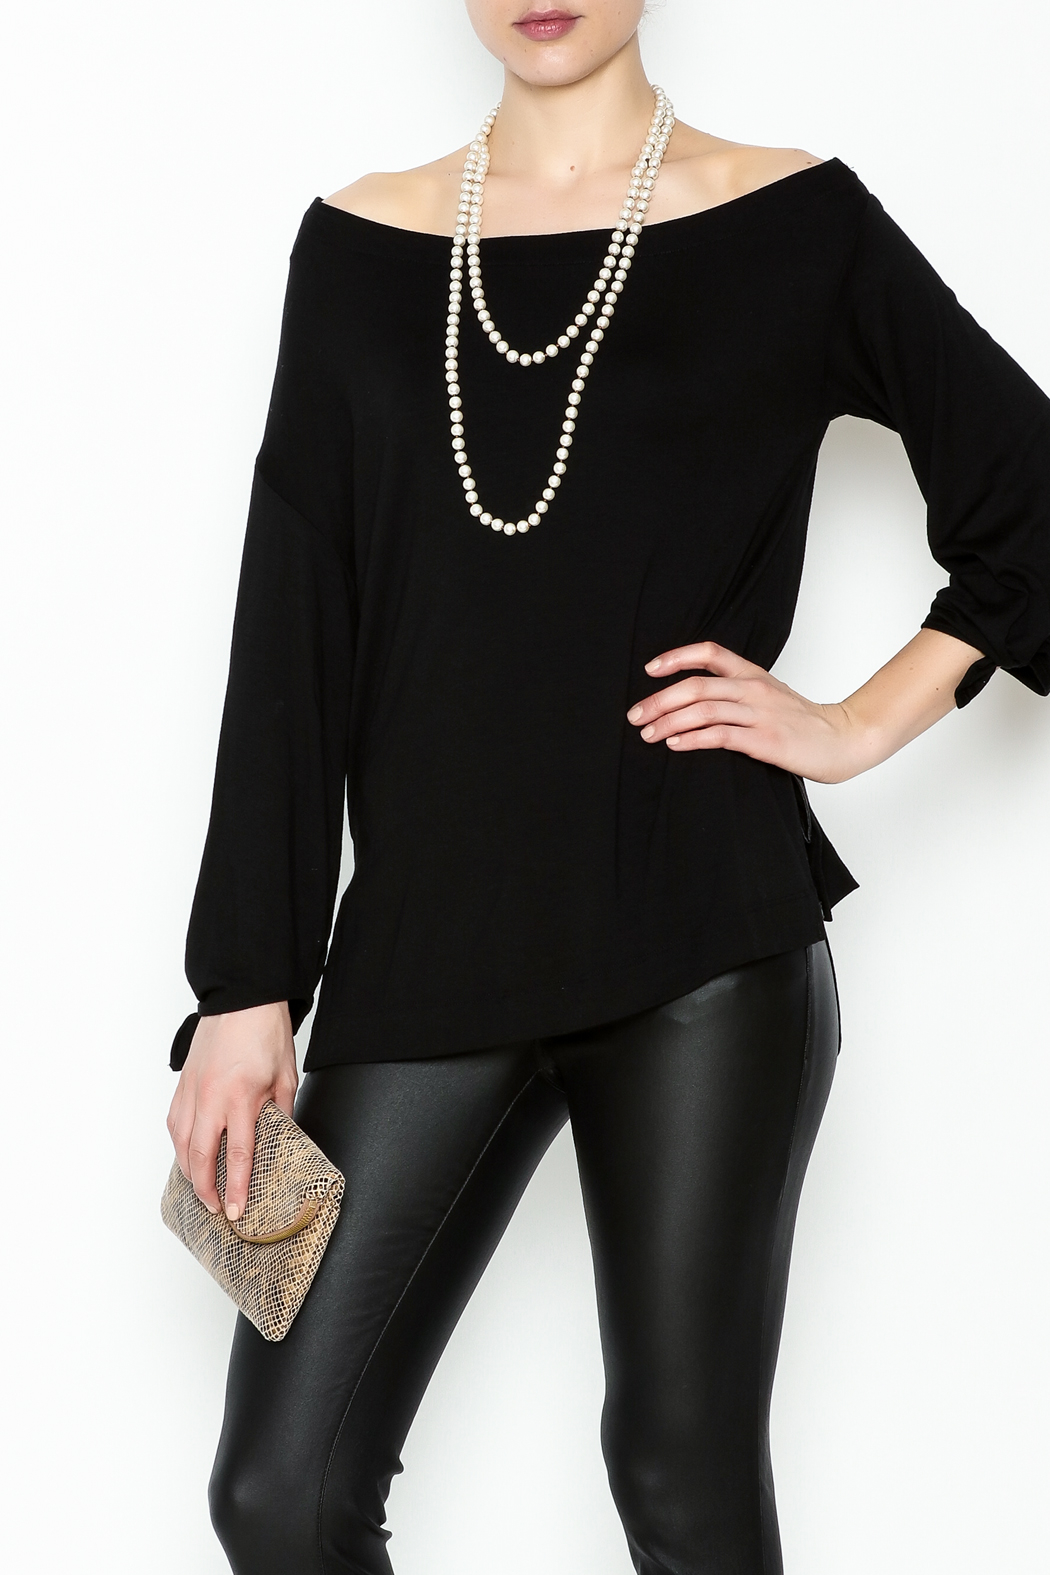 Ella Moss Black Off Shoulder Top - Main Image